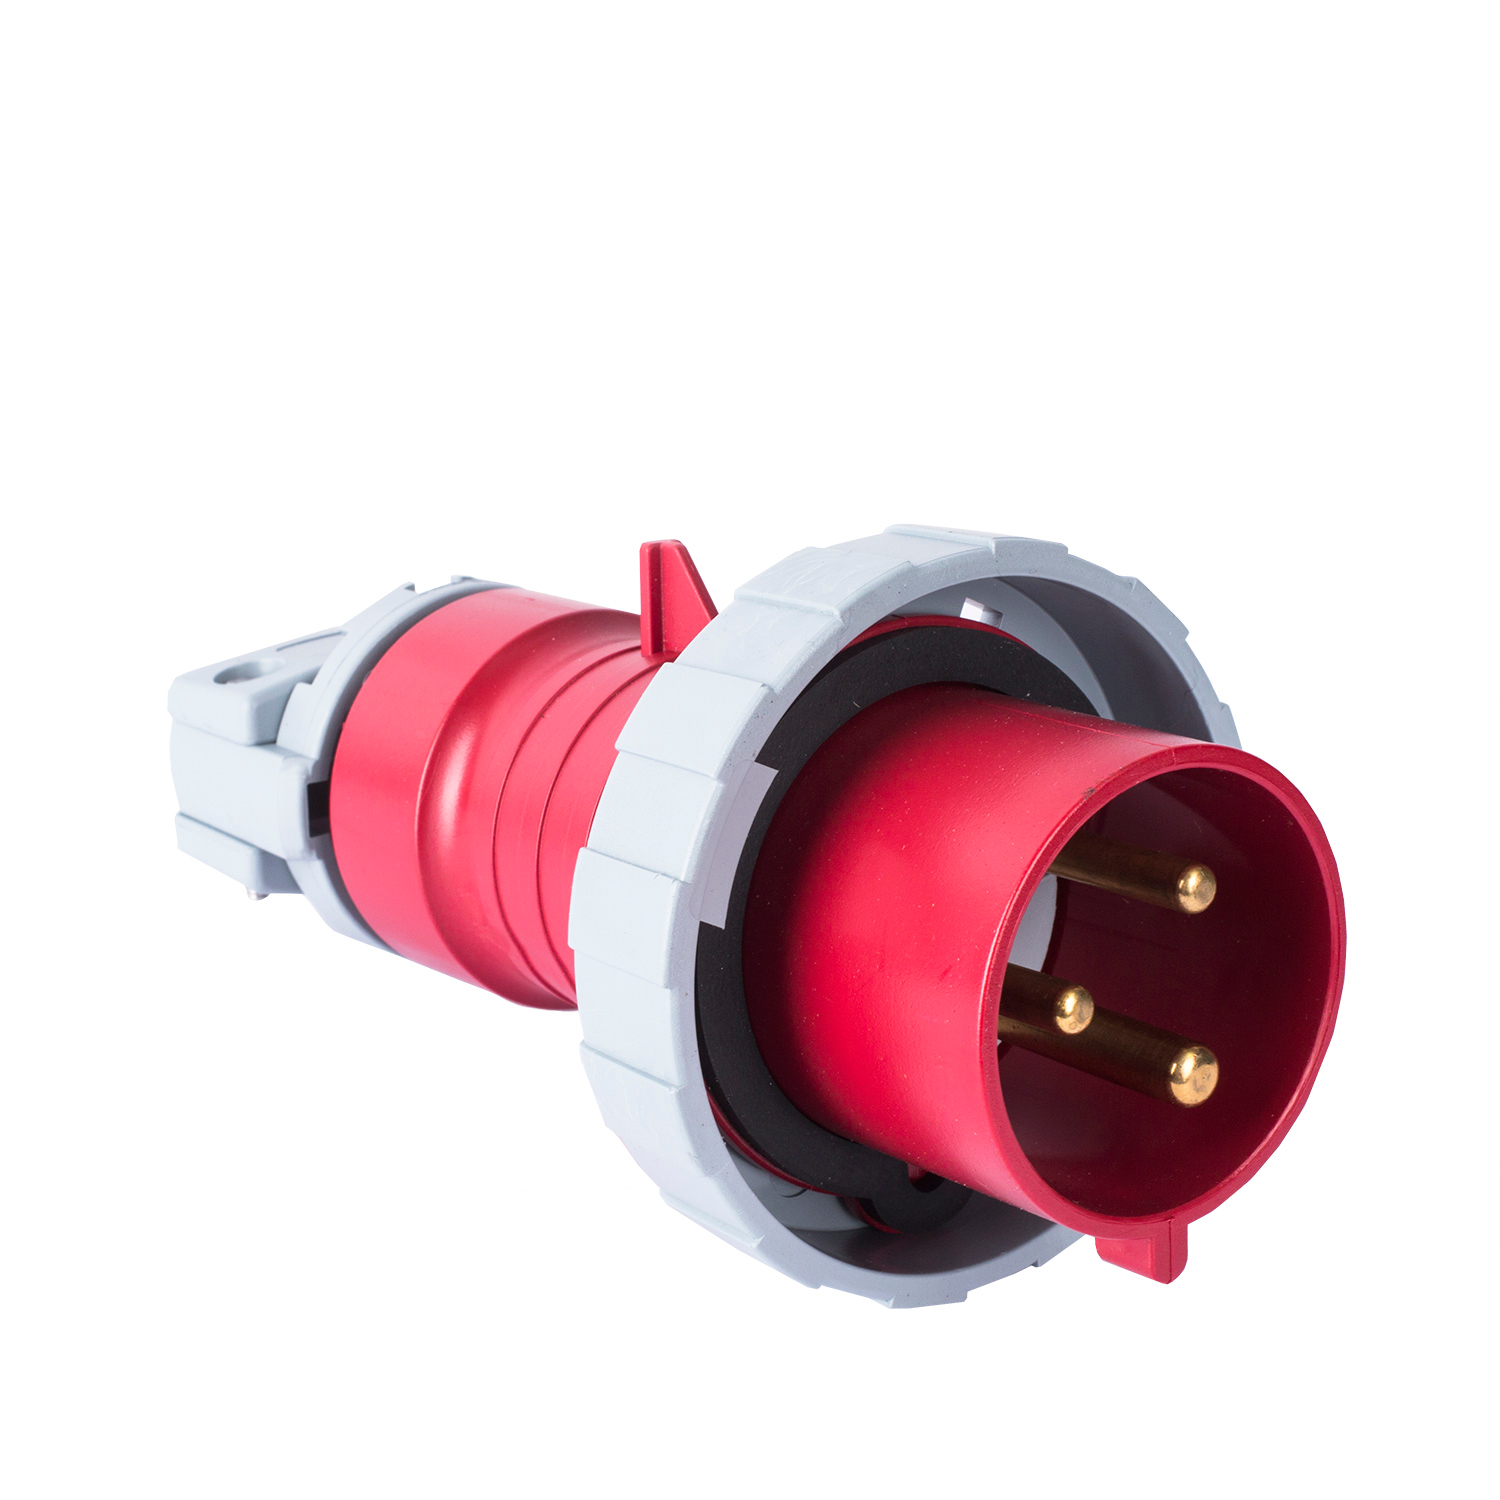 Wiring Devices Electrical Plugs Standard Electric Supply International Fuse Box Connector Iec 60 309 Pin And Sleeve Plug 20 Amp 4 Pole 5